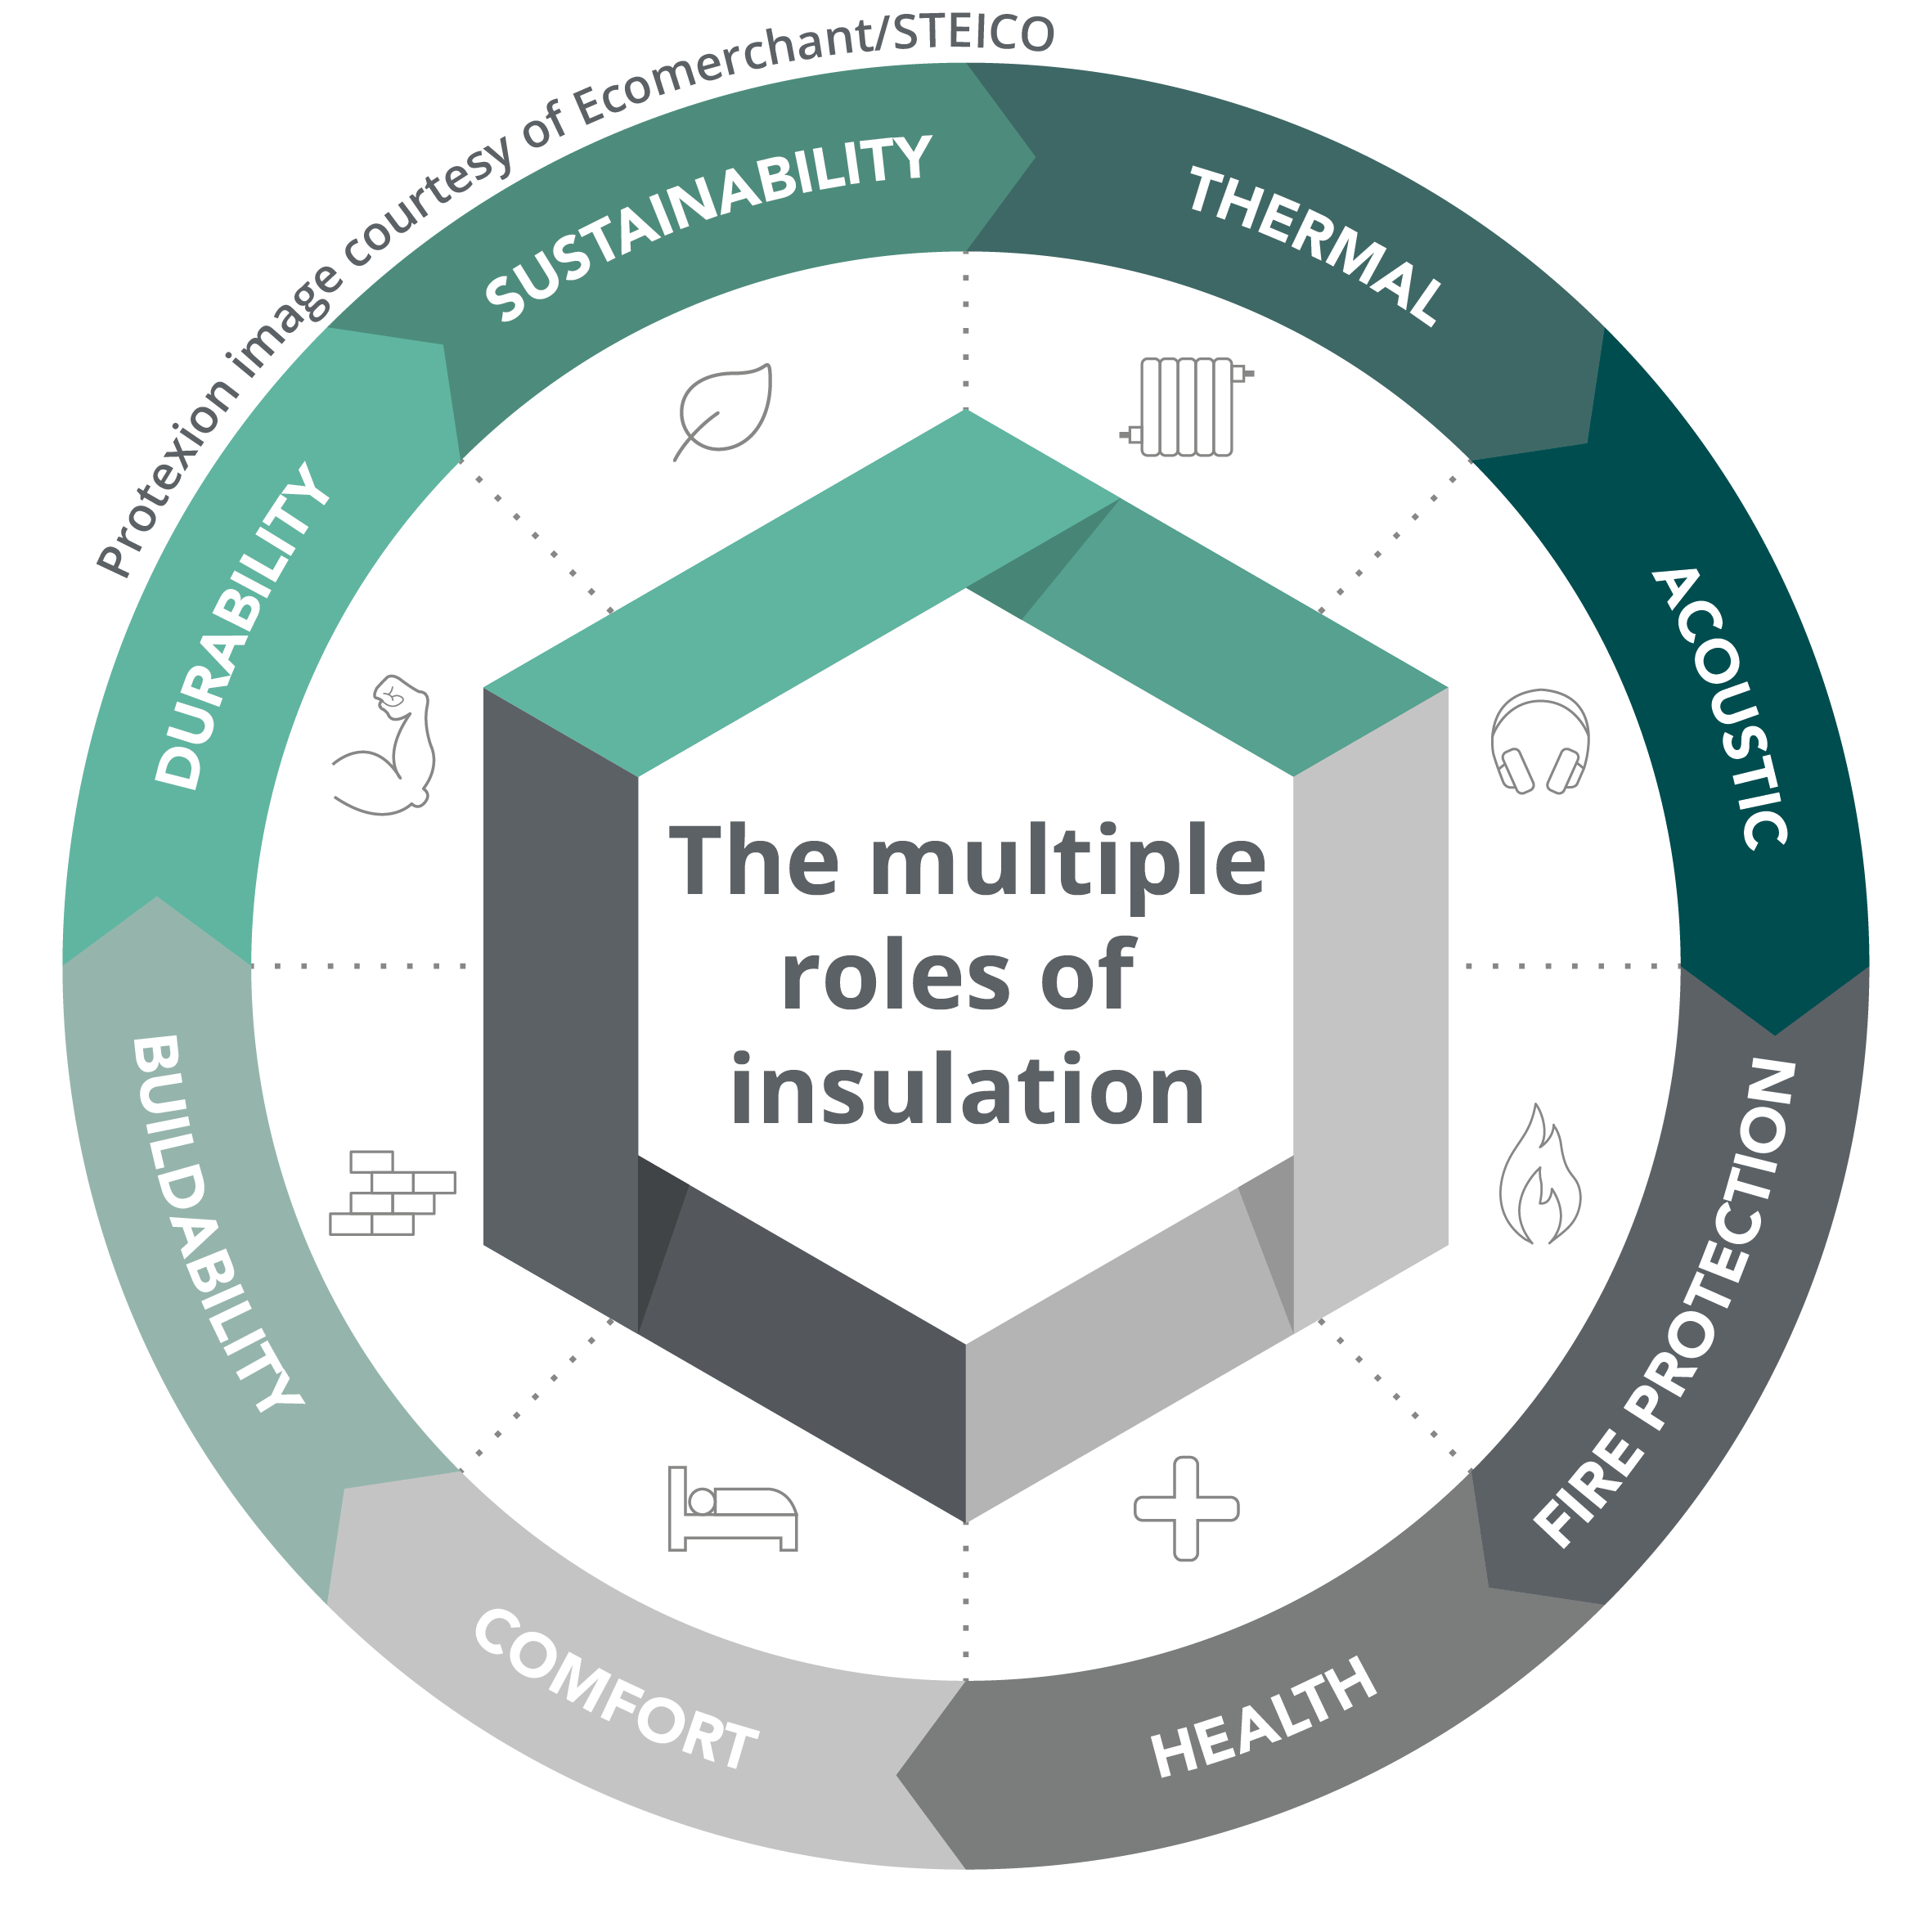 The multiples roles of insulation